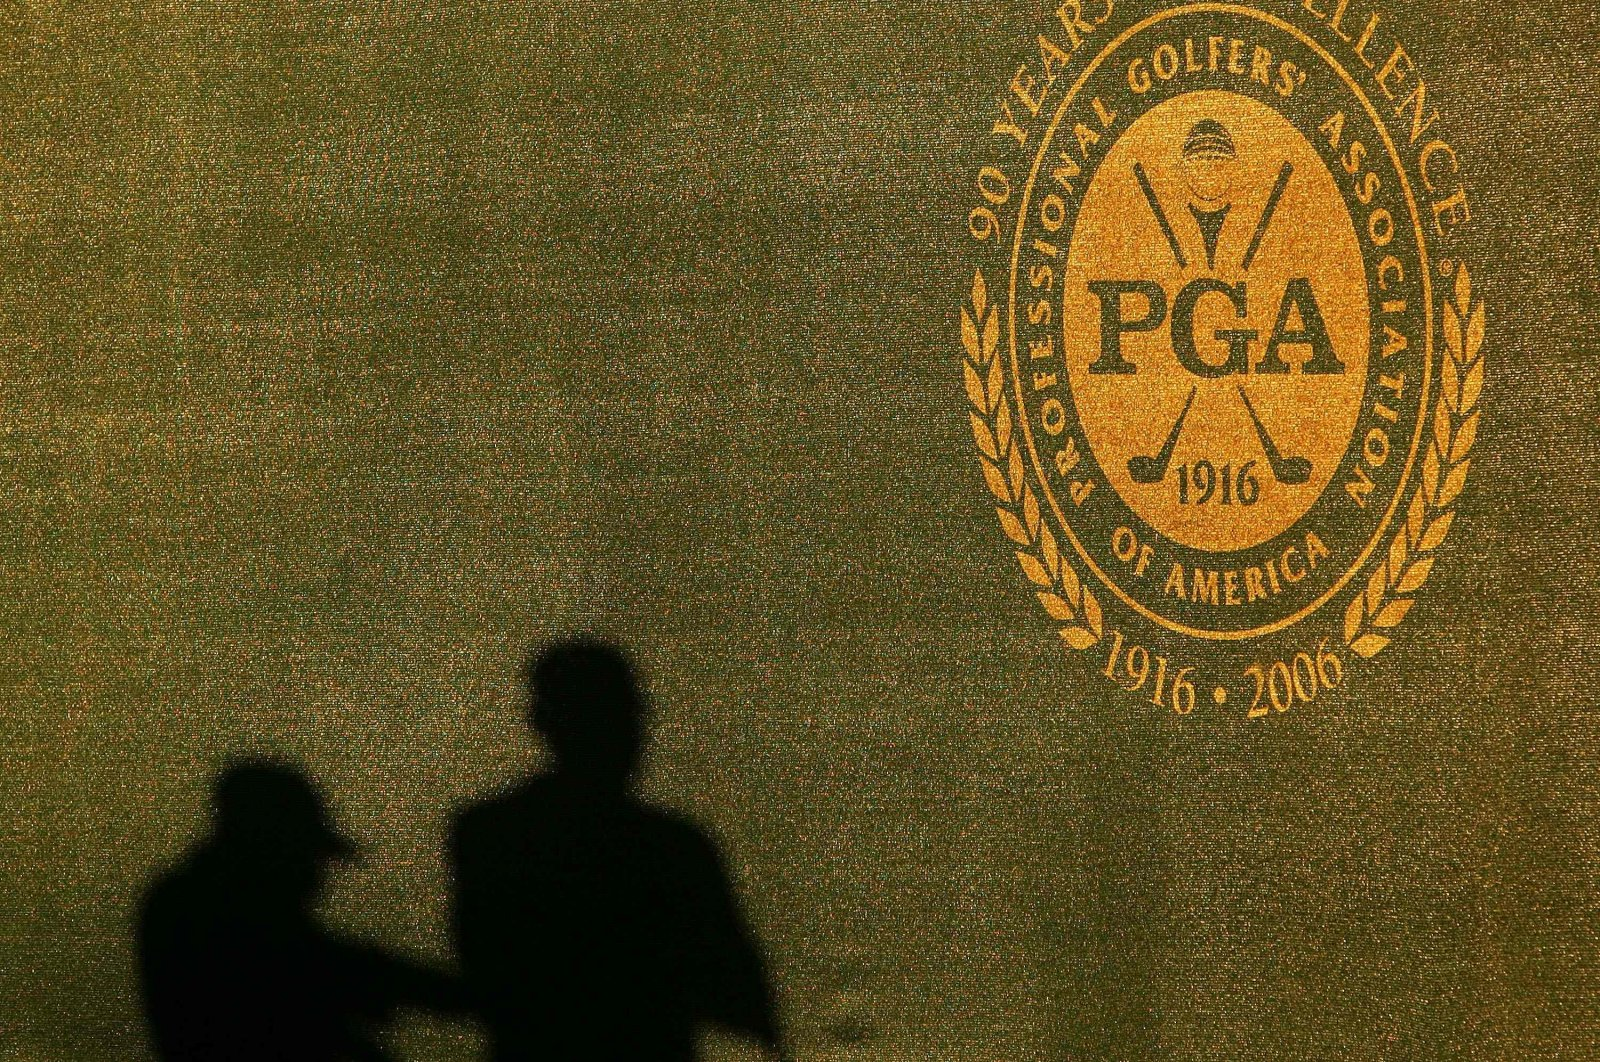 Two shadows of grounds crew are seen on the wall near the PGA logo during practice for the 2006 PGA Championship at Medinah Country Club in Medinah, U.S., Aug. 16, 2006. (AFP Photo)